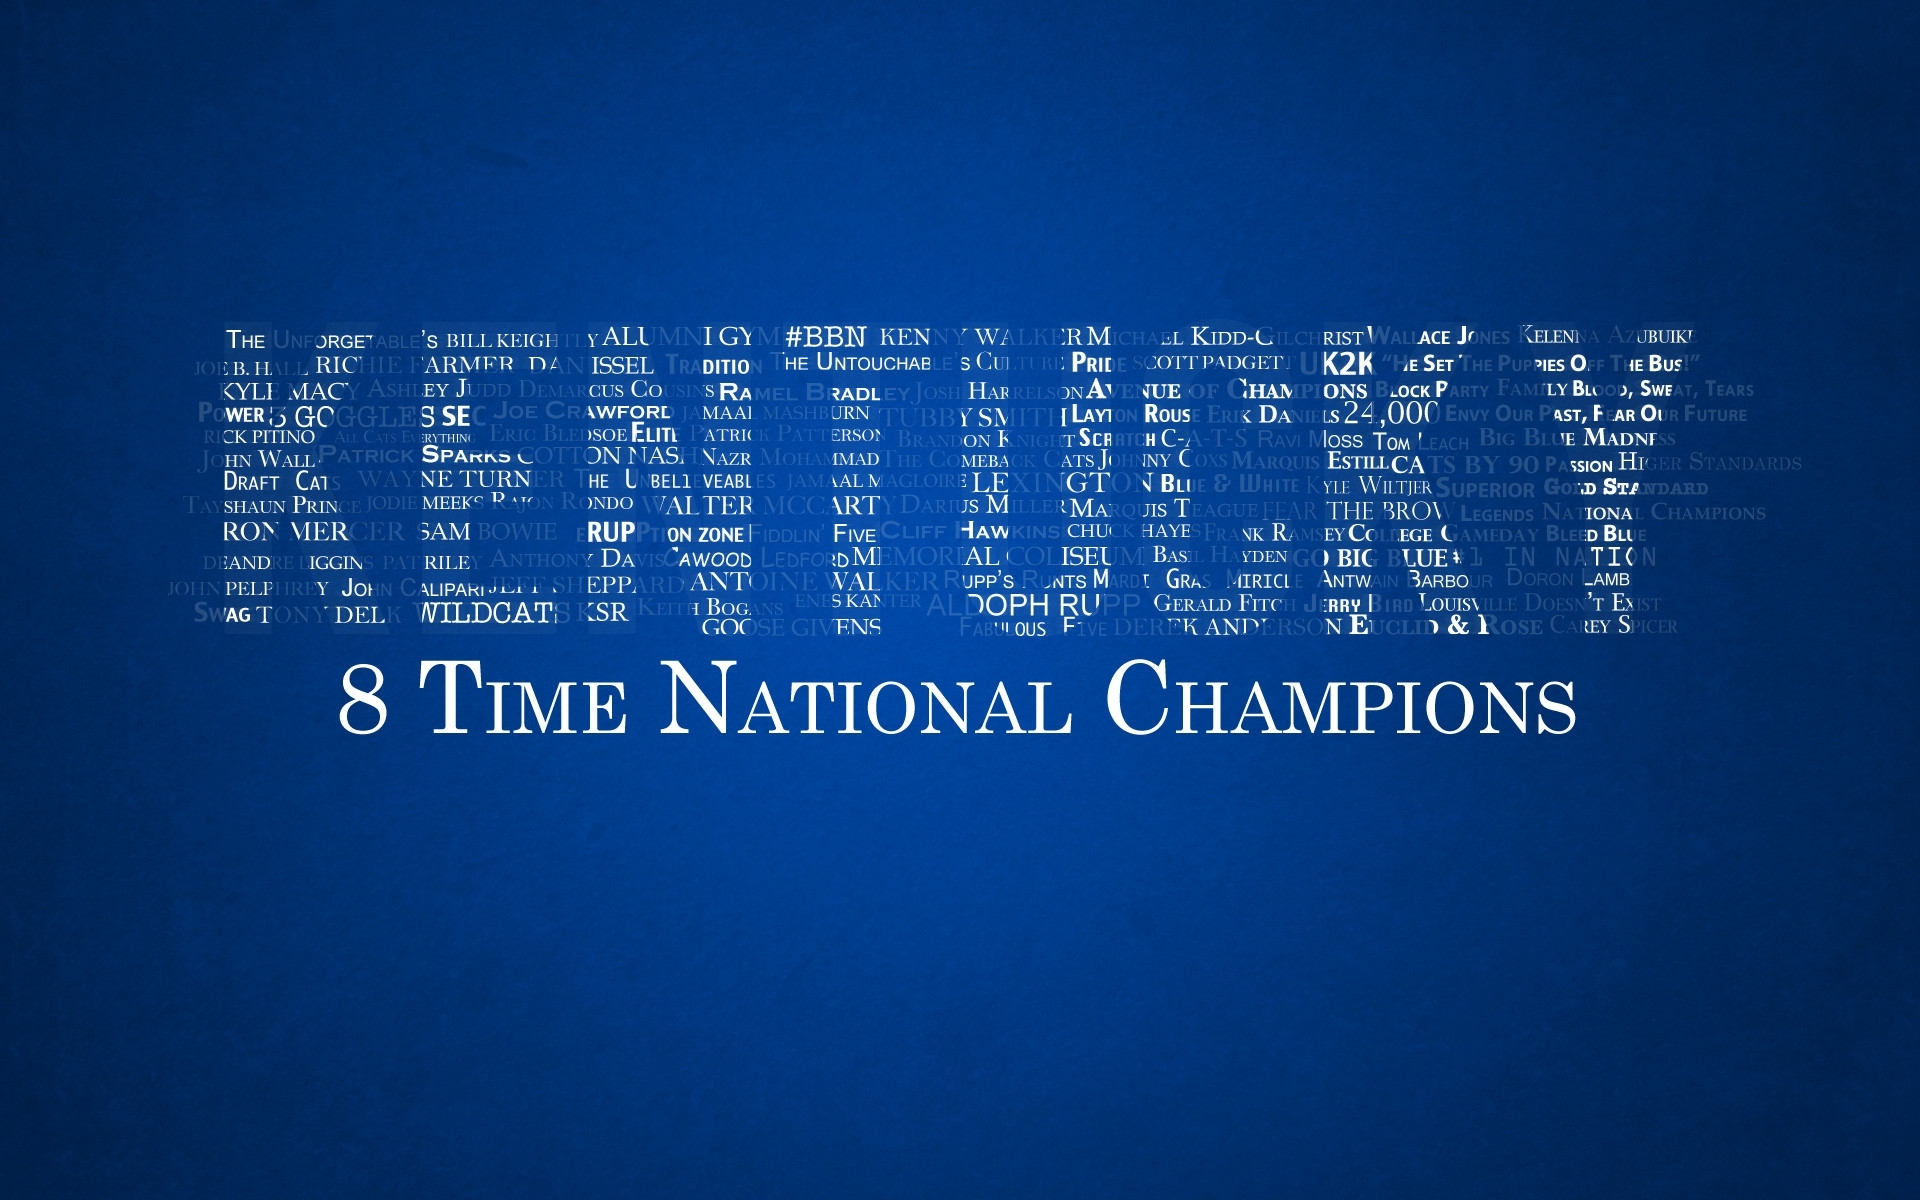 kentucky wildcats wallpapers download free | pixelstalk